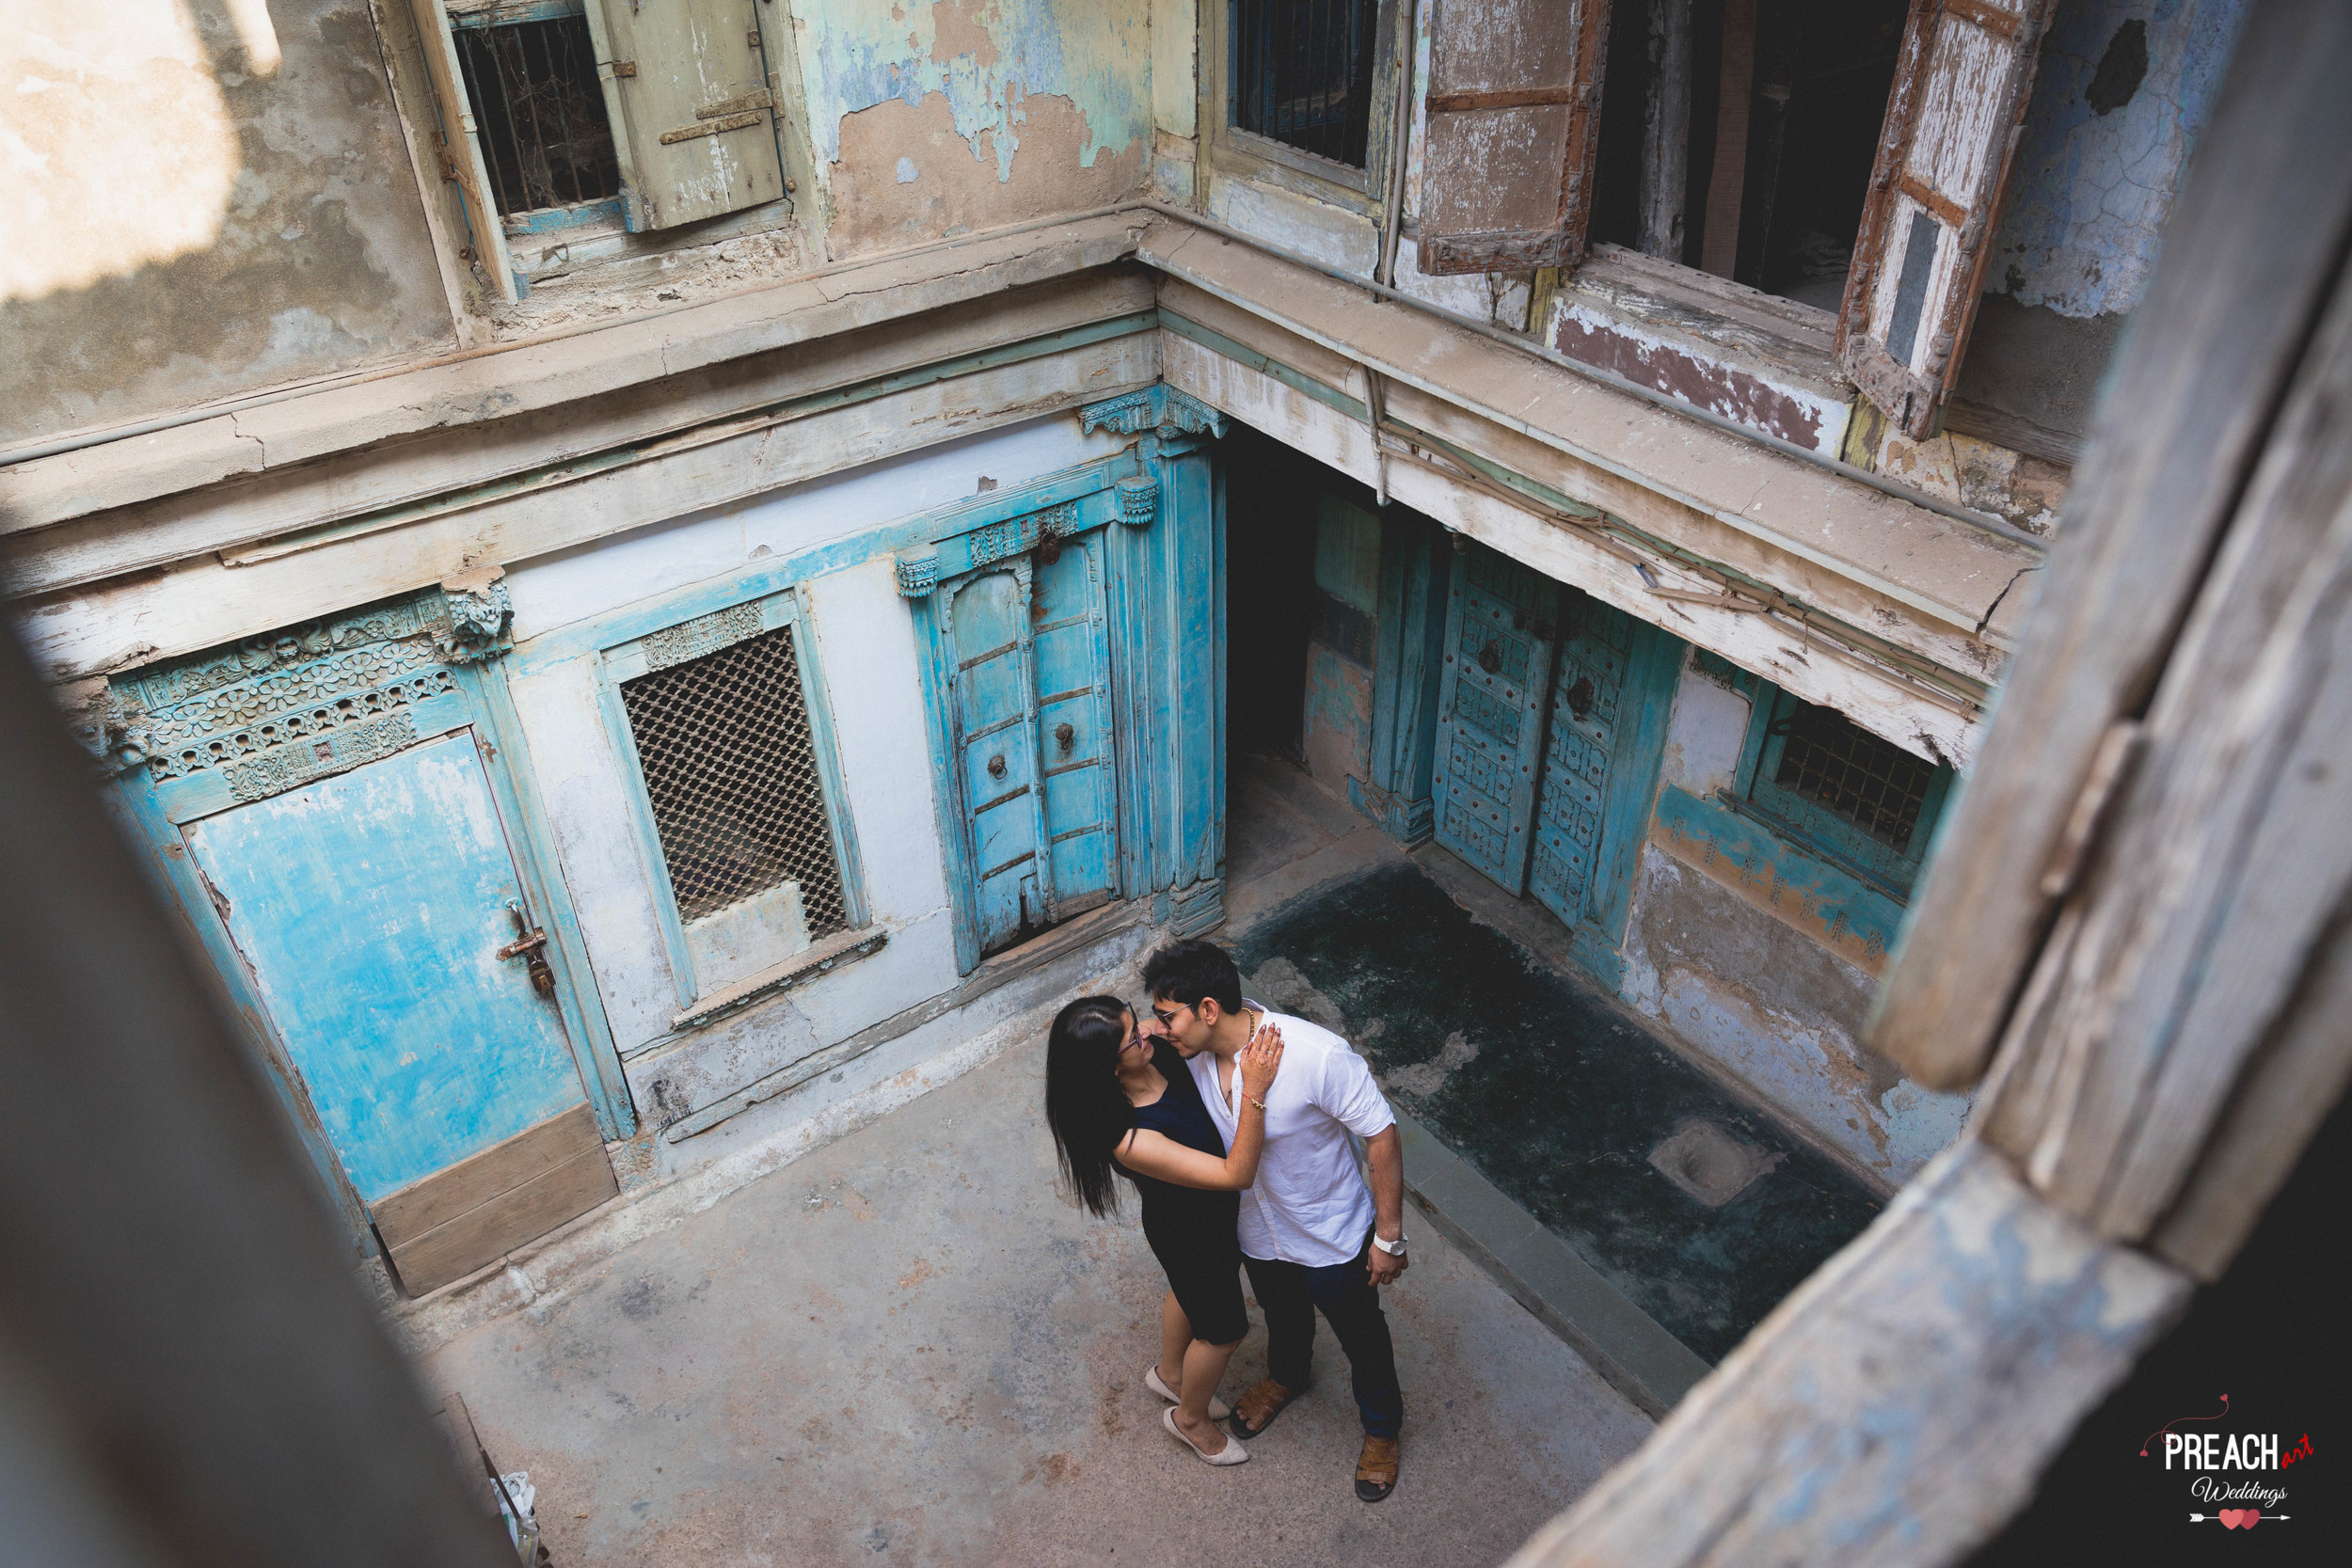 V&M_PRE-WEDDING SHOOT_AHMEDABAD OLD CITY_PREACH ART-26.jpg